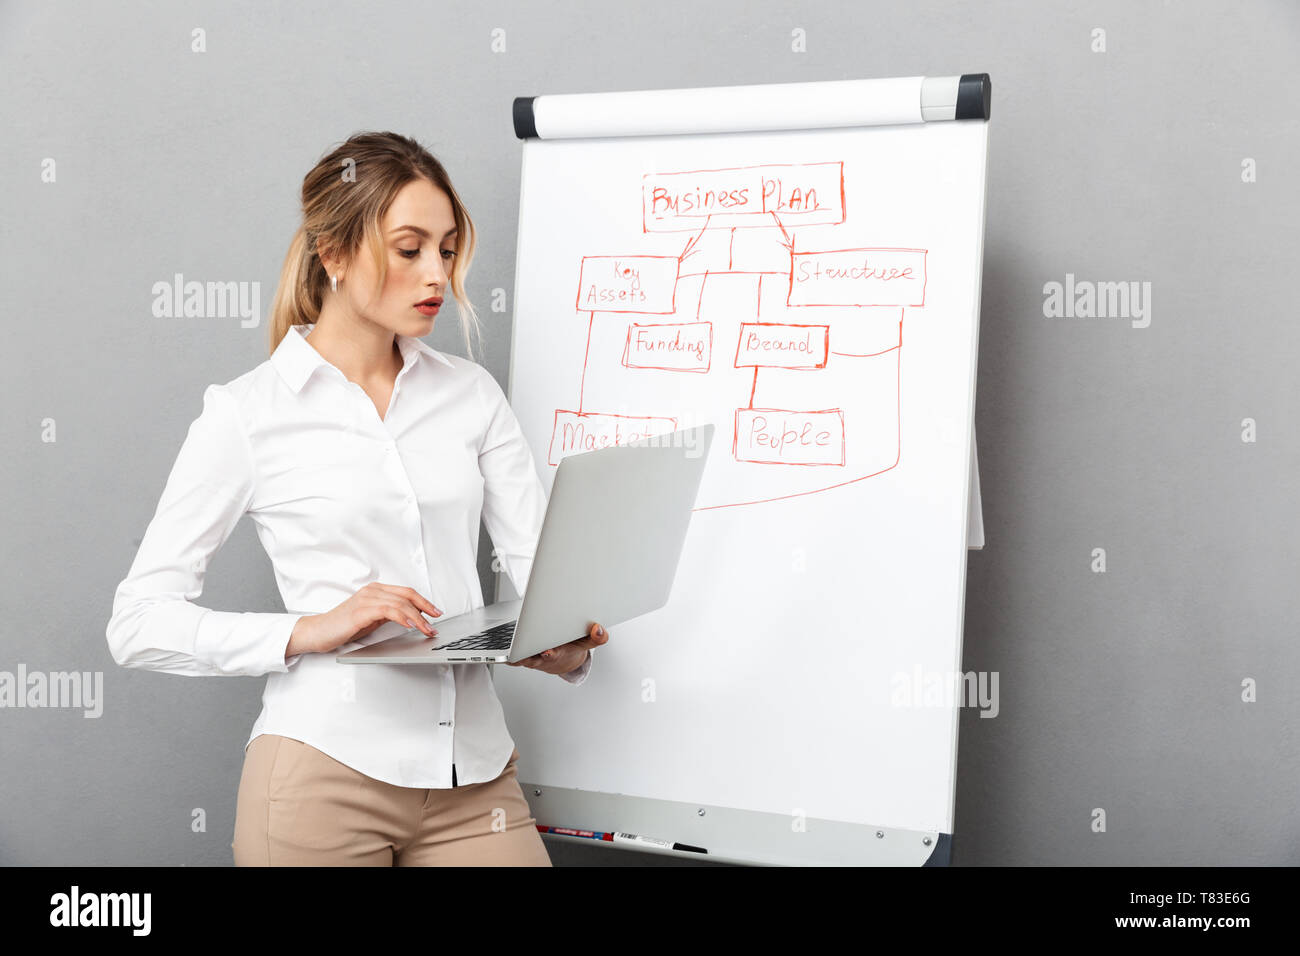 Image of successful businesswoman in formal wear using flipchart and laptop while making presentation in the office isolated over gray background - Stock Image